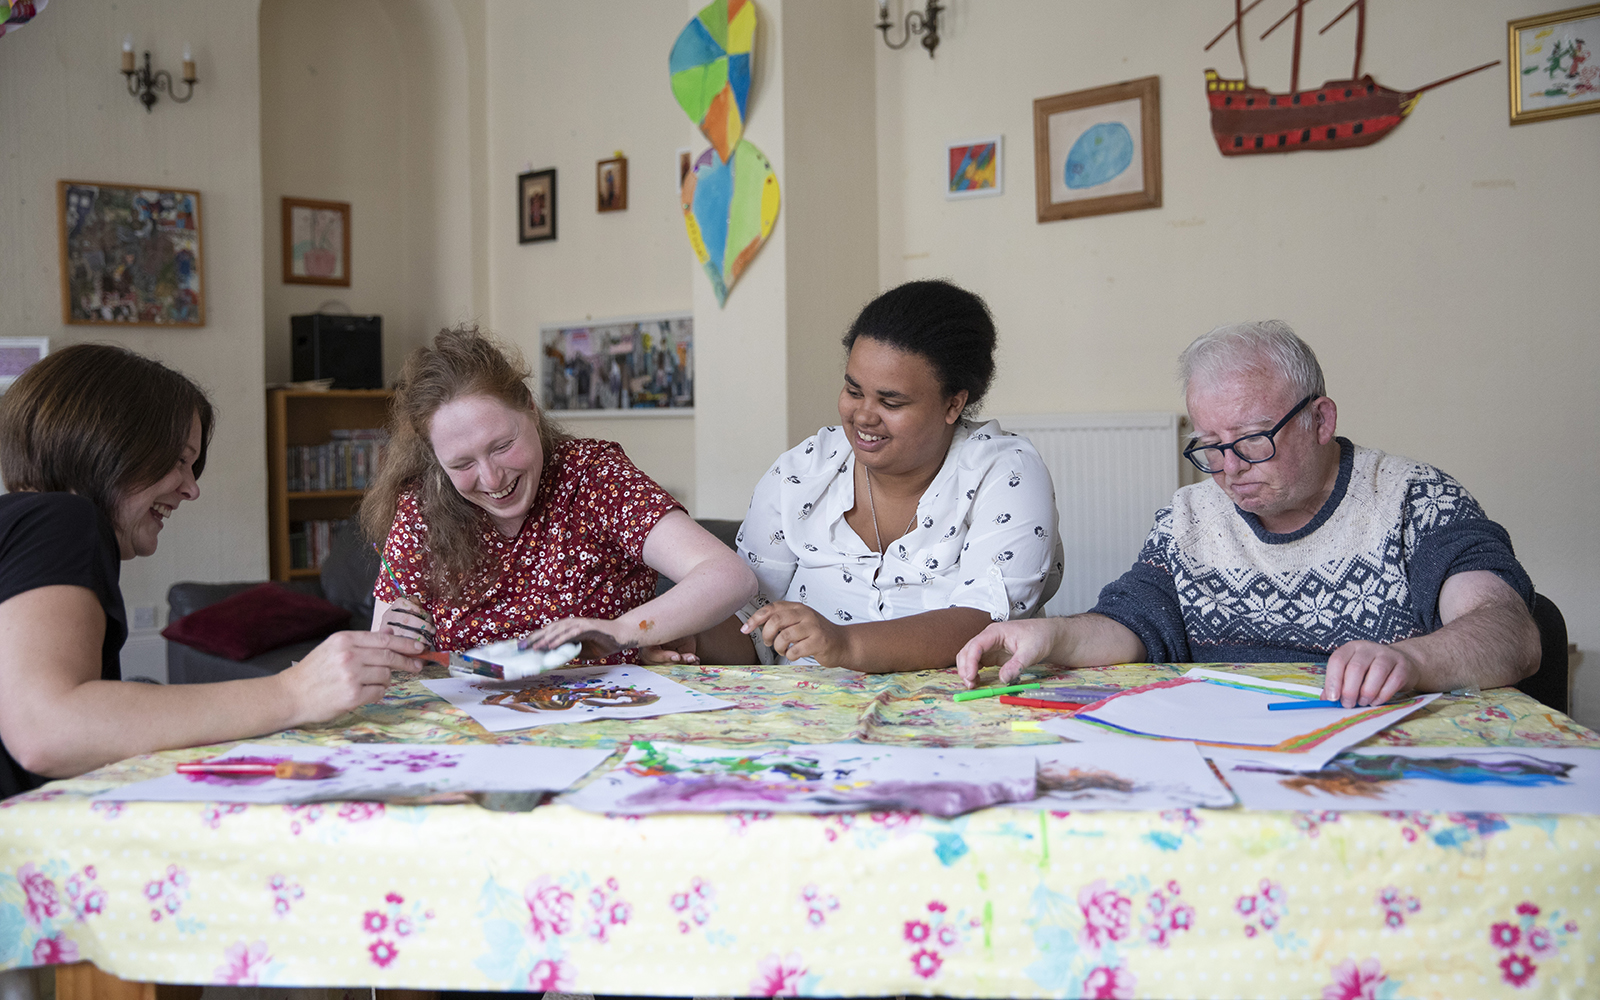 Four people sat together at kitchen table taking part in crafting activities.